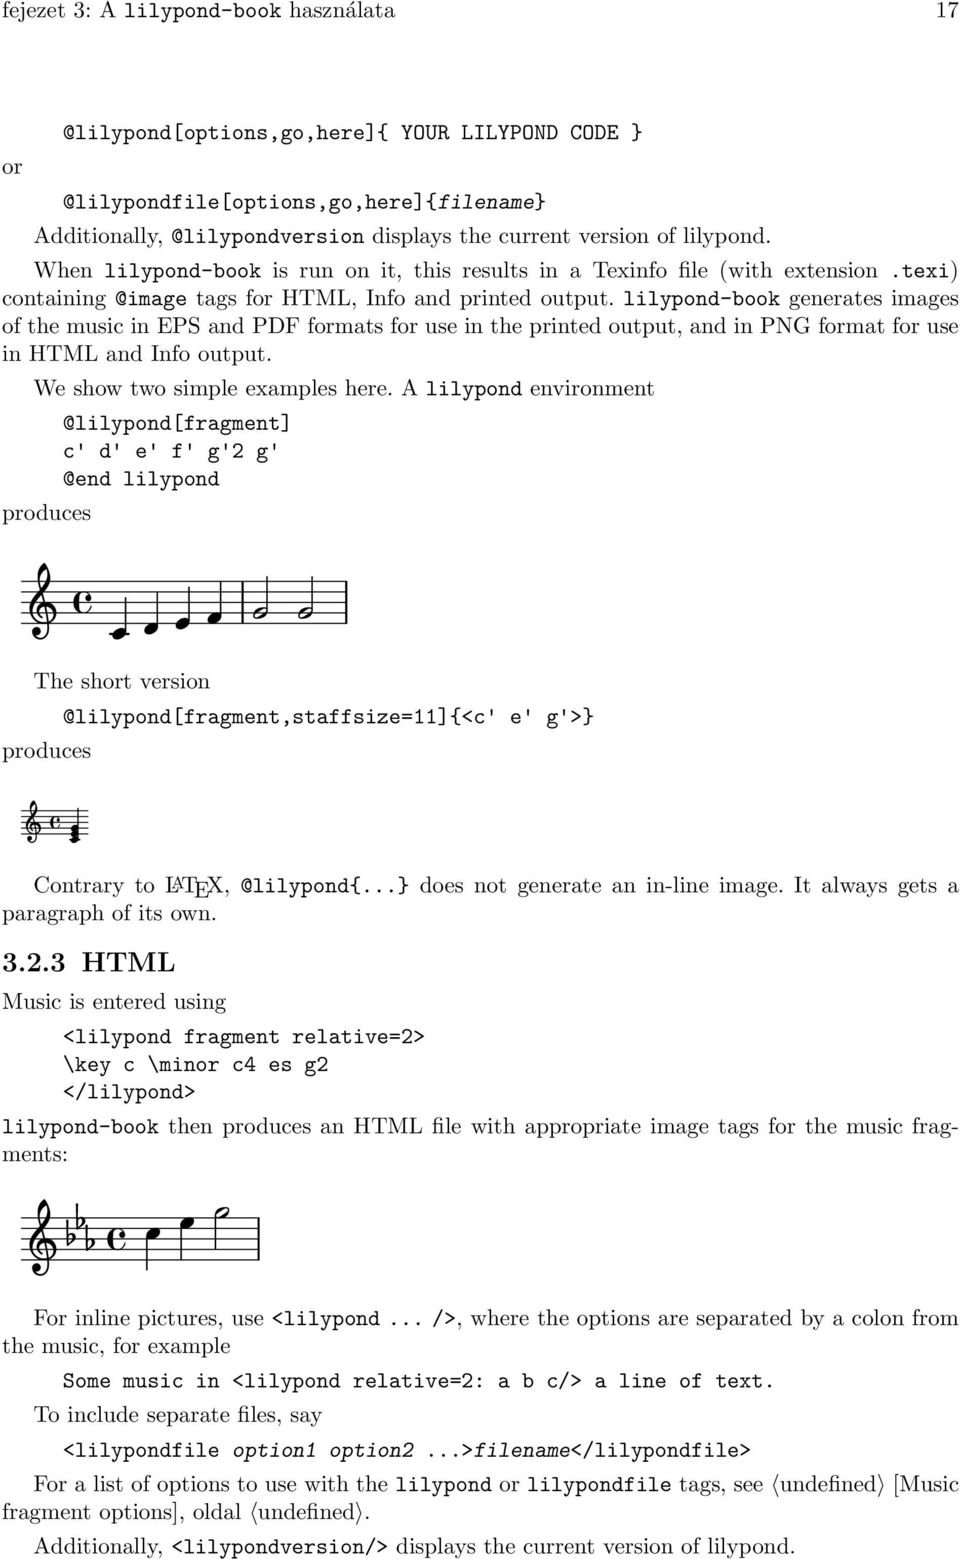 lilypond-book generates images of the music in EPS and PDF formats for use in the printed output, and in PNG format for use in HTML and Info output. We show two simple examples here.